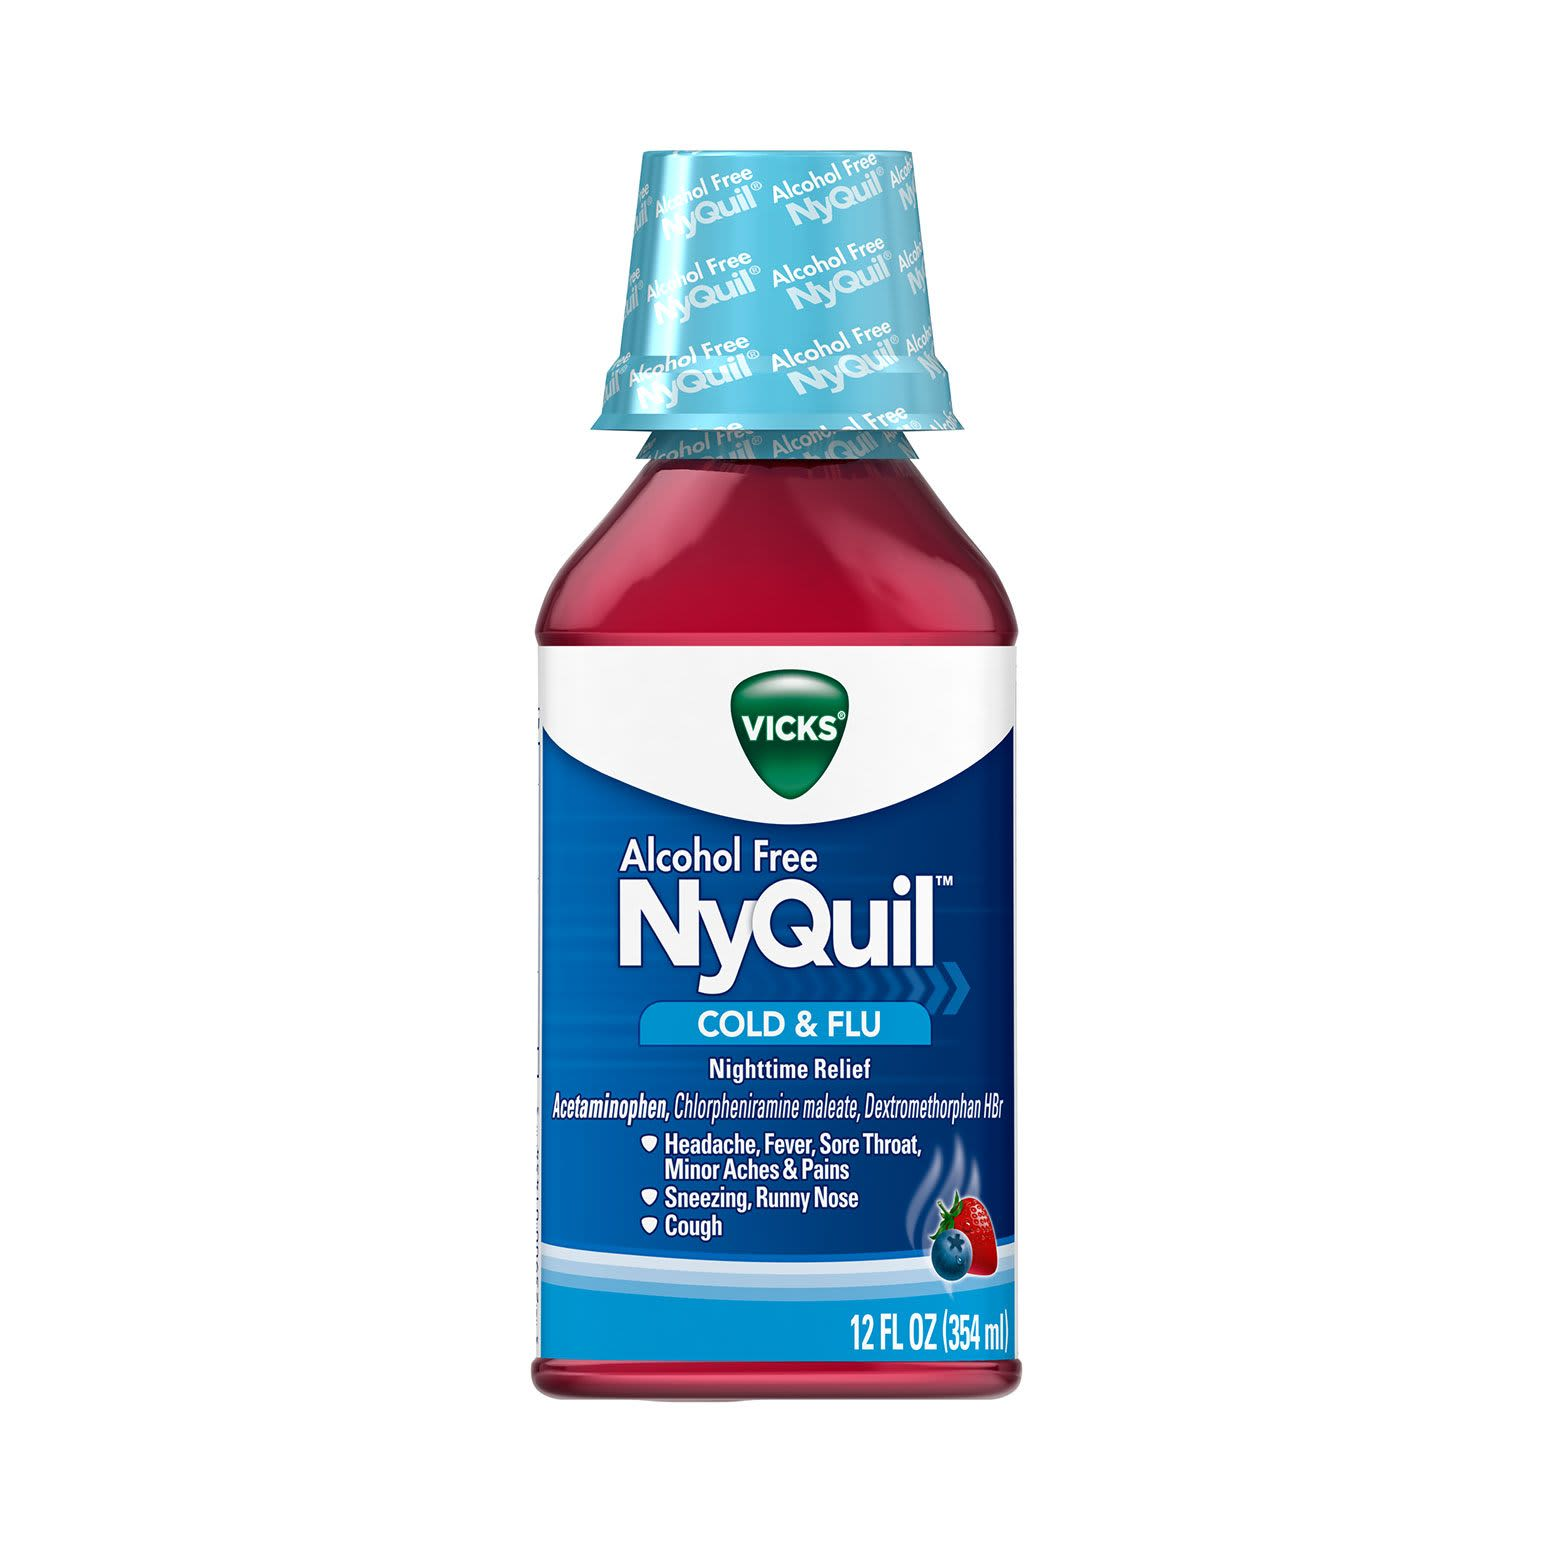 alcohol-free-nyquil-cold-and-flu-relief-liquid